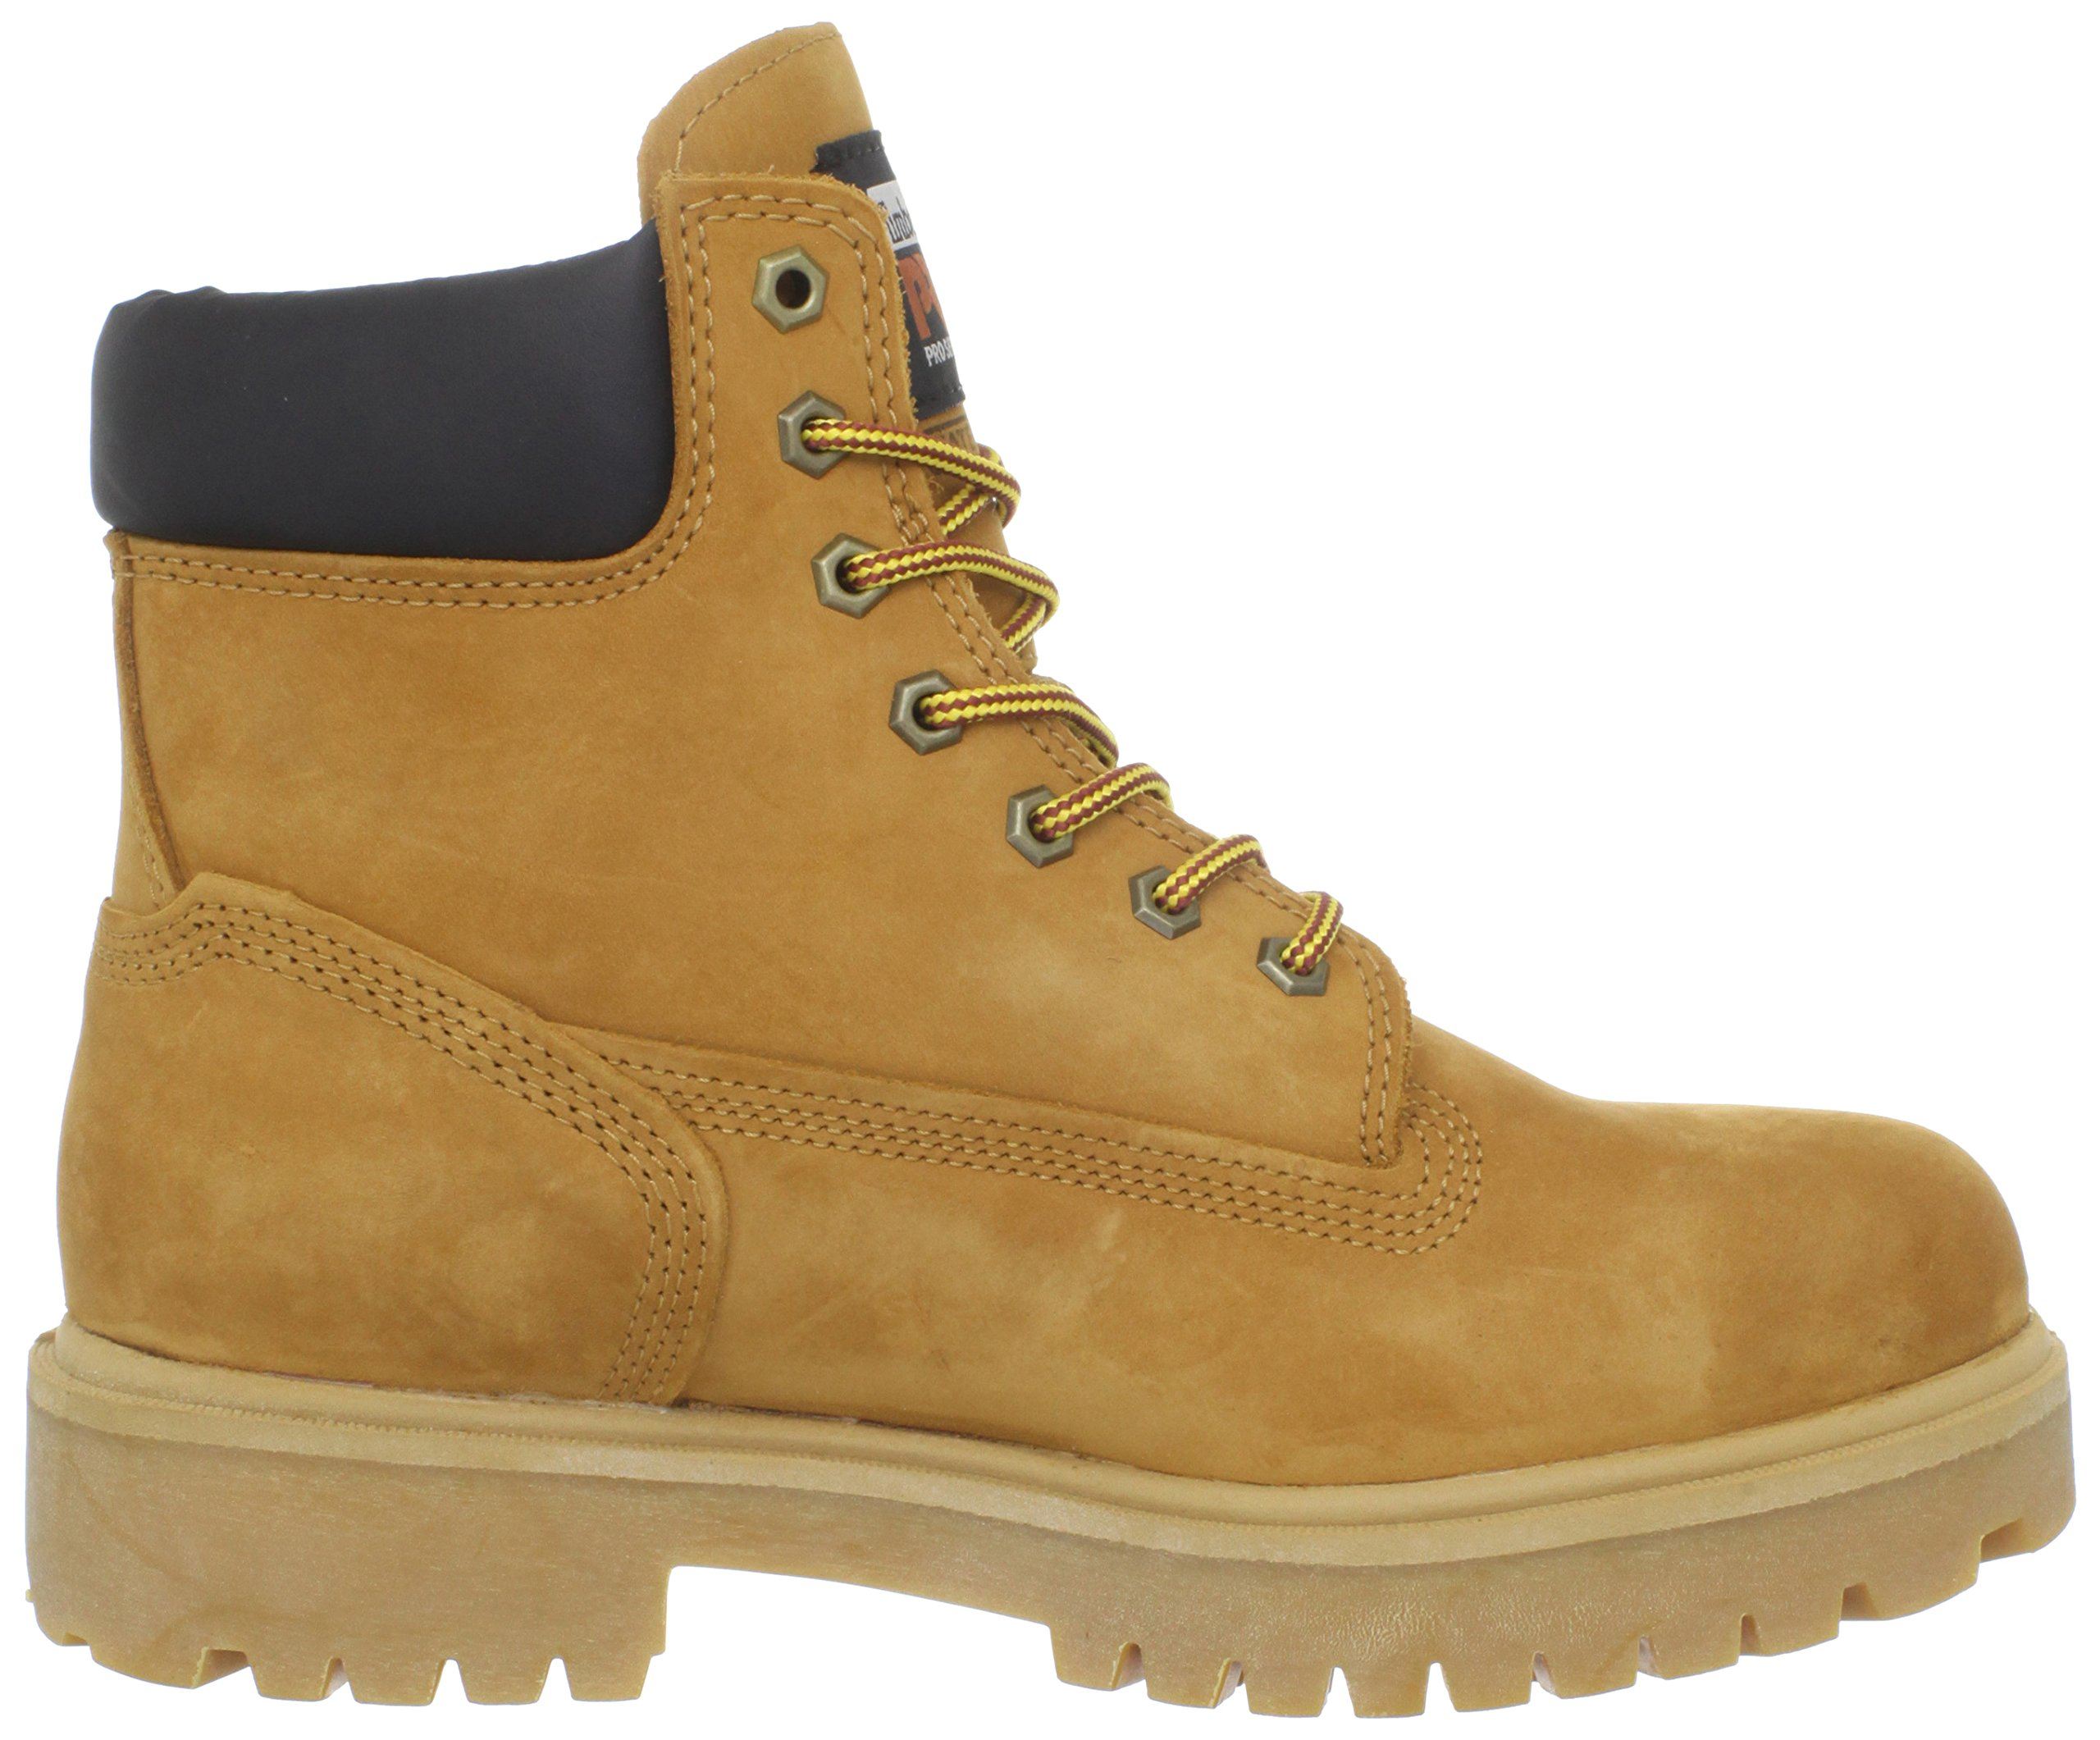 Timberland PRO Men's 65016 Direct Attach 6'' Steel Toe Boot,Yellow,9.5 W by Timberland PRO (Image #7)